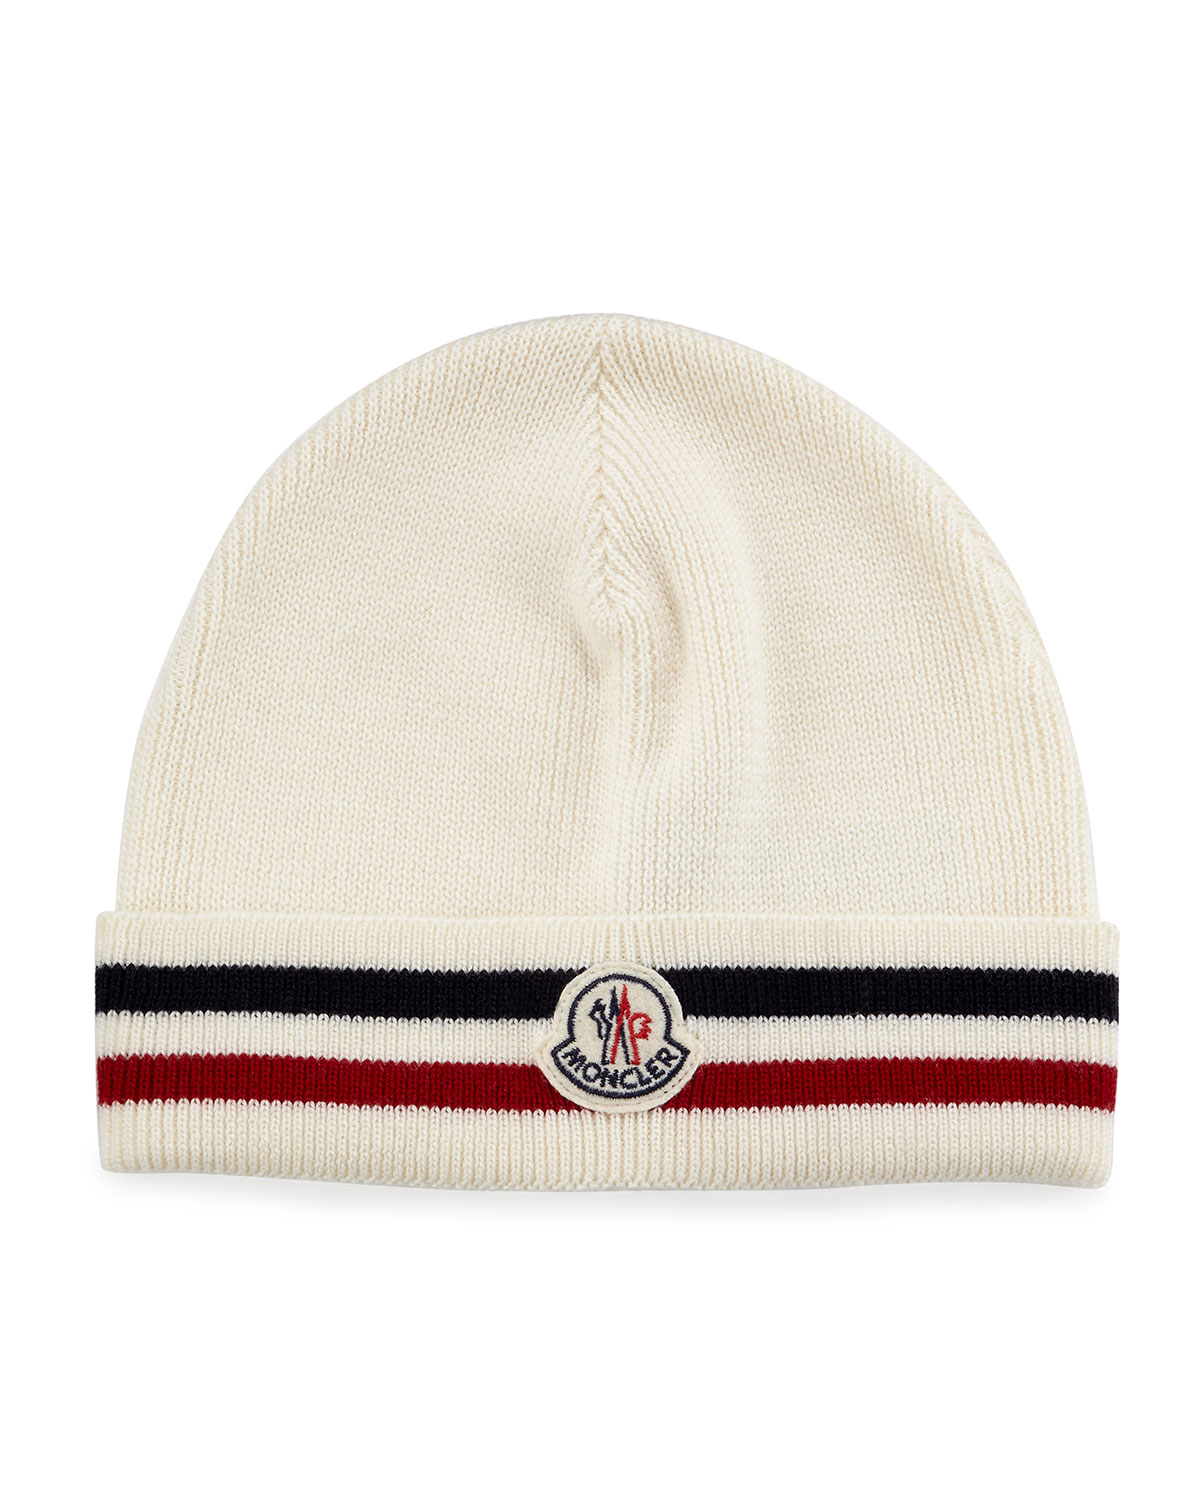 Lyst - Moncler Striped Logo Cashmere Beanie Hat in White for Men 946729ba95a